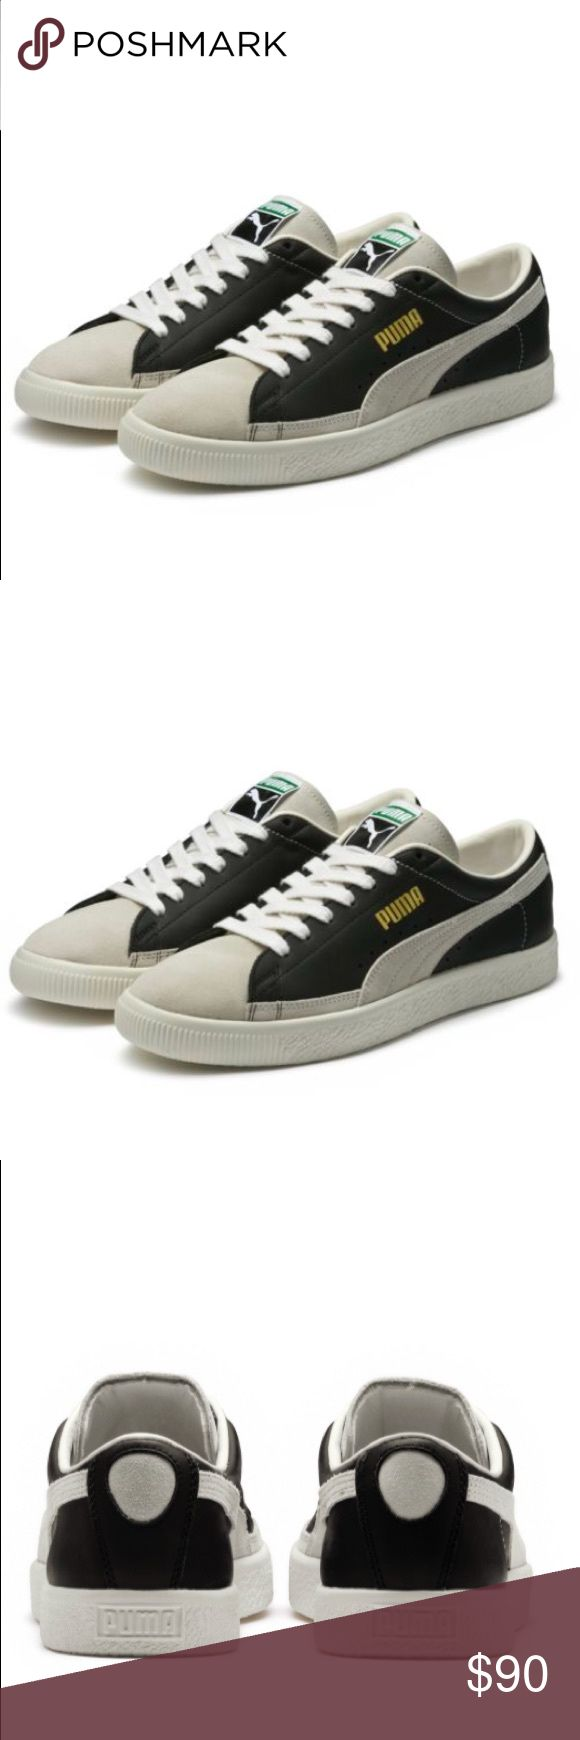 🎊BRAND NEW ! NEVER WORN! 🎉 Men's Brand New! never worn! Pumas Basket 90680  Purchased wrong size for a gift!  paid $95 Puma Shoes Sneakers